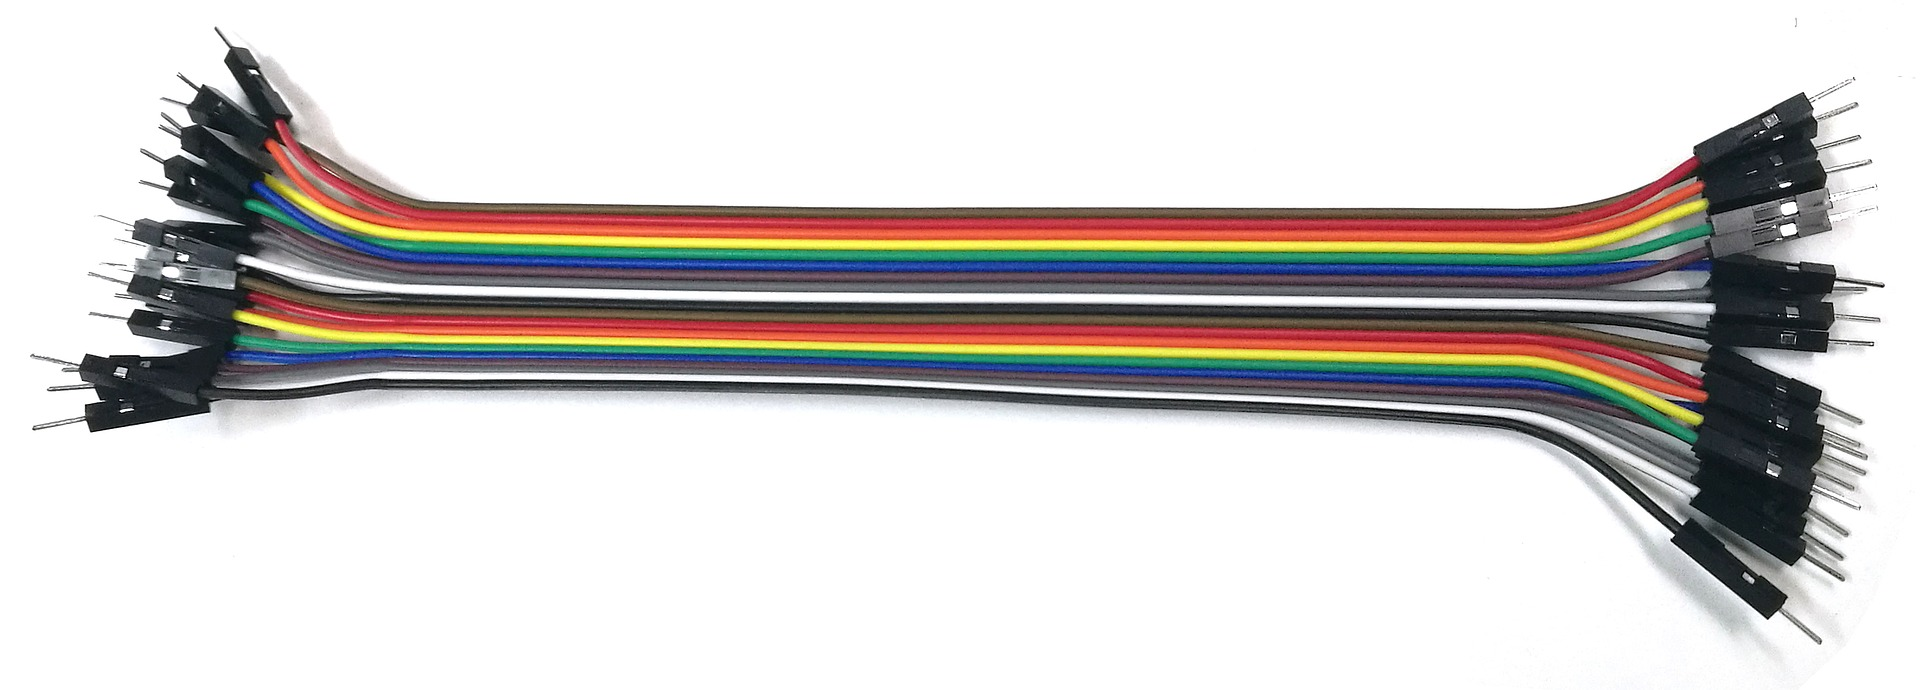 Ribbon and Flat Cable example 7